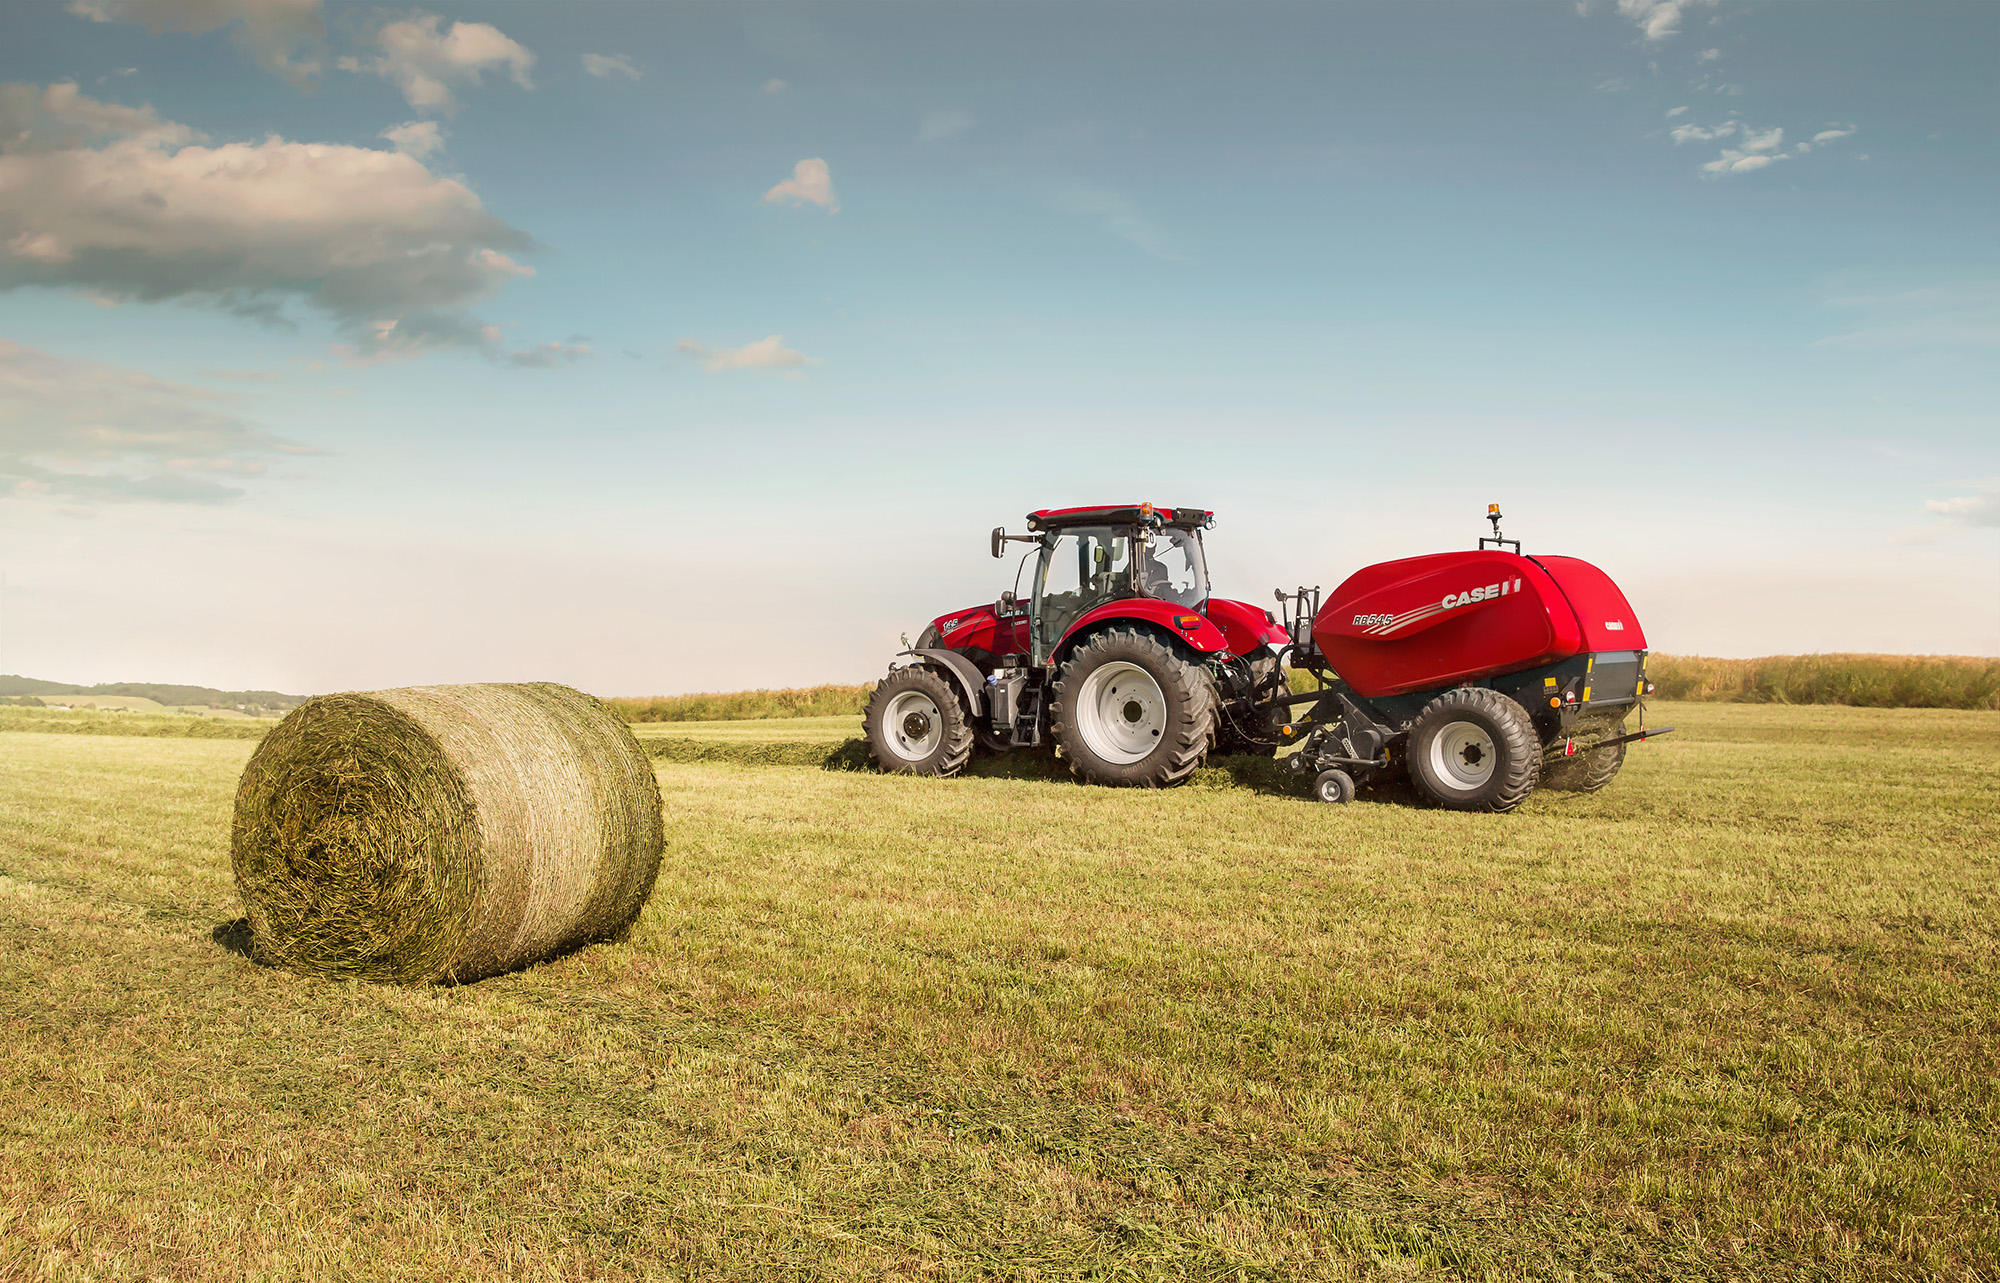 Pics: New round balers from Case IH for 2017 season